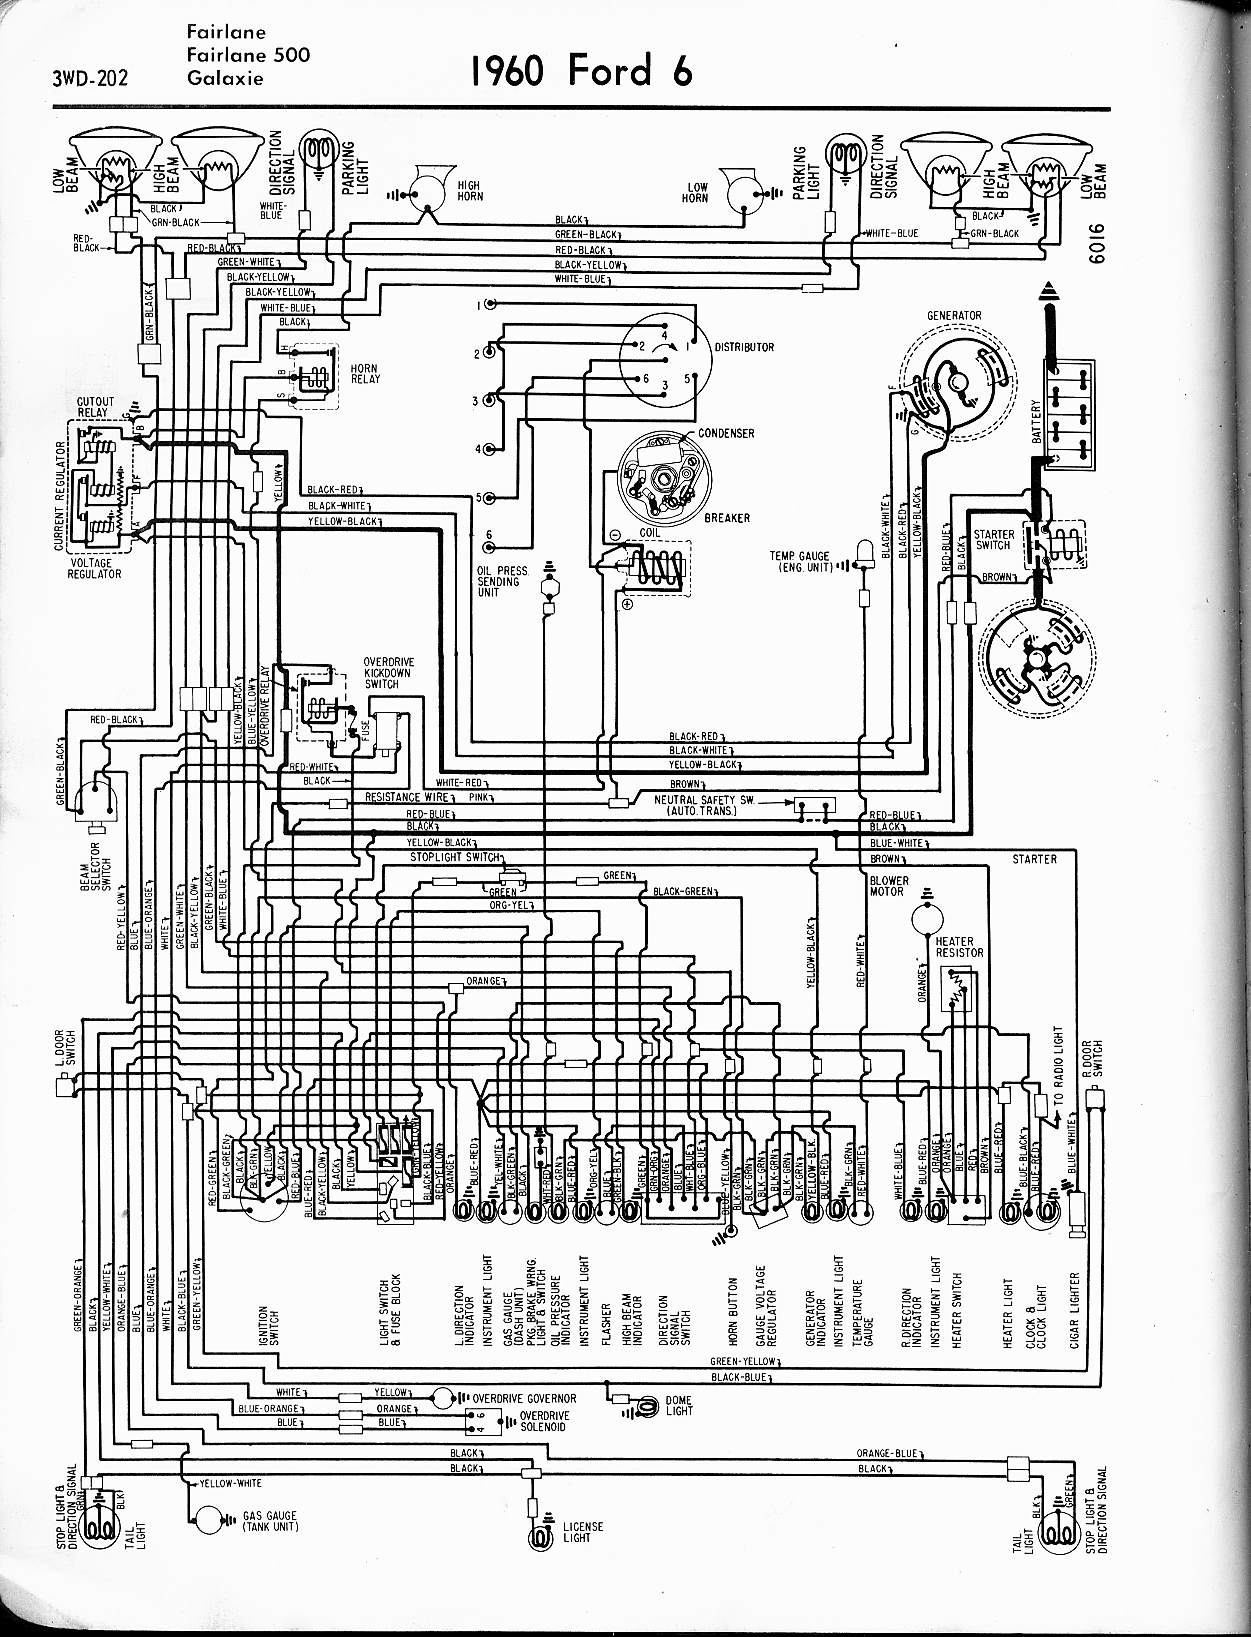 Bf Falcon Wiring Diagram Manual Great Installation Of 1964 Ford Futura 1960 Ranchero Simple Diagrams Rh 12 Studio011 De Dc Dse 7310 1962